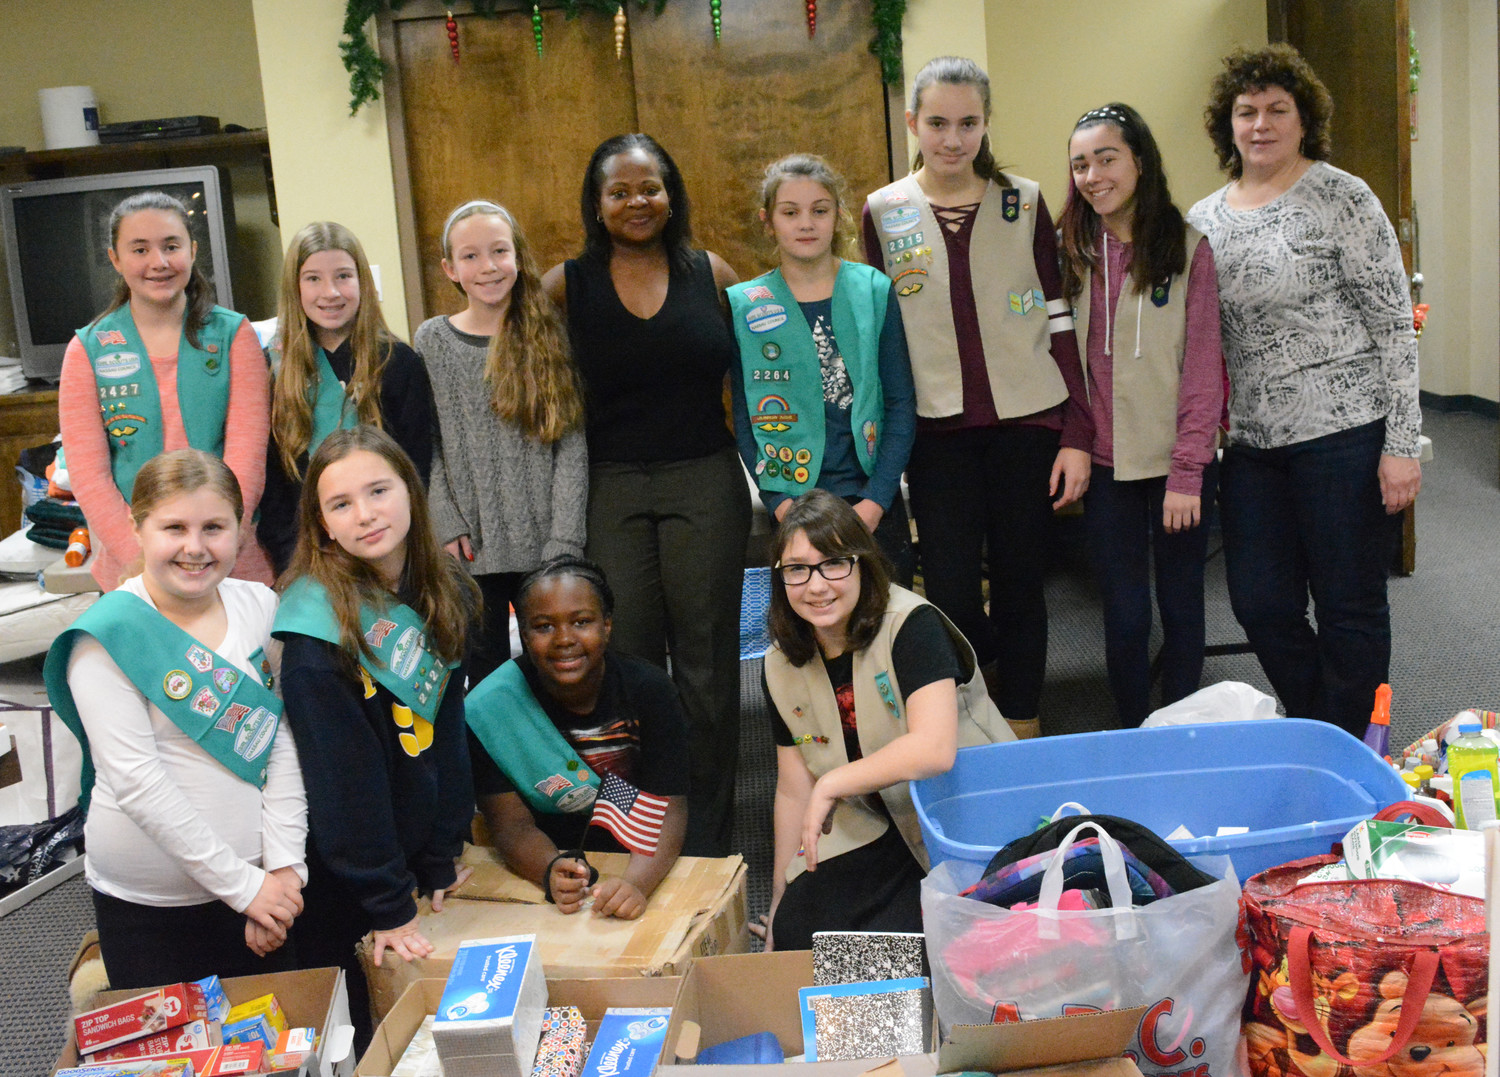 Girl Scouts from Troop 2427 spent a snowy Saturday morning sorting through donations to send to hurricane-ravaged areas of Texas, Florida and Puerto Rico.